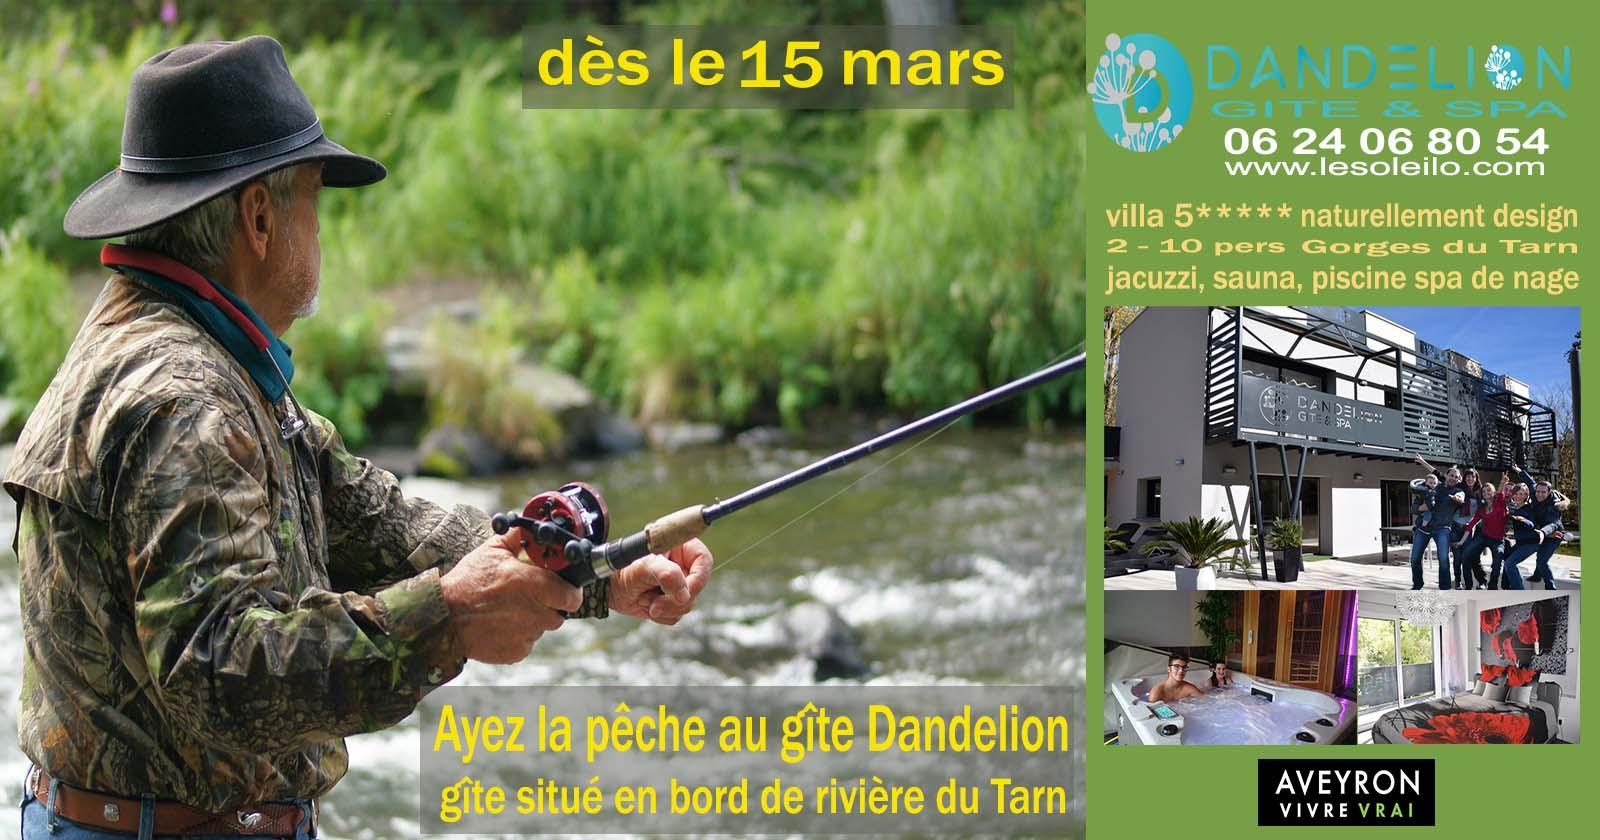 Aveyron fishing trip at the Dandelion river lodge on the Banks of the Tarn